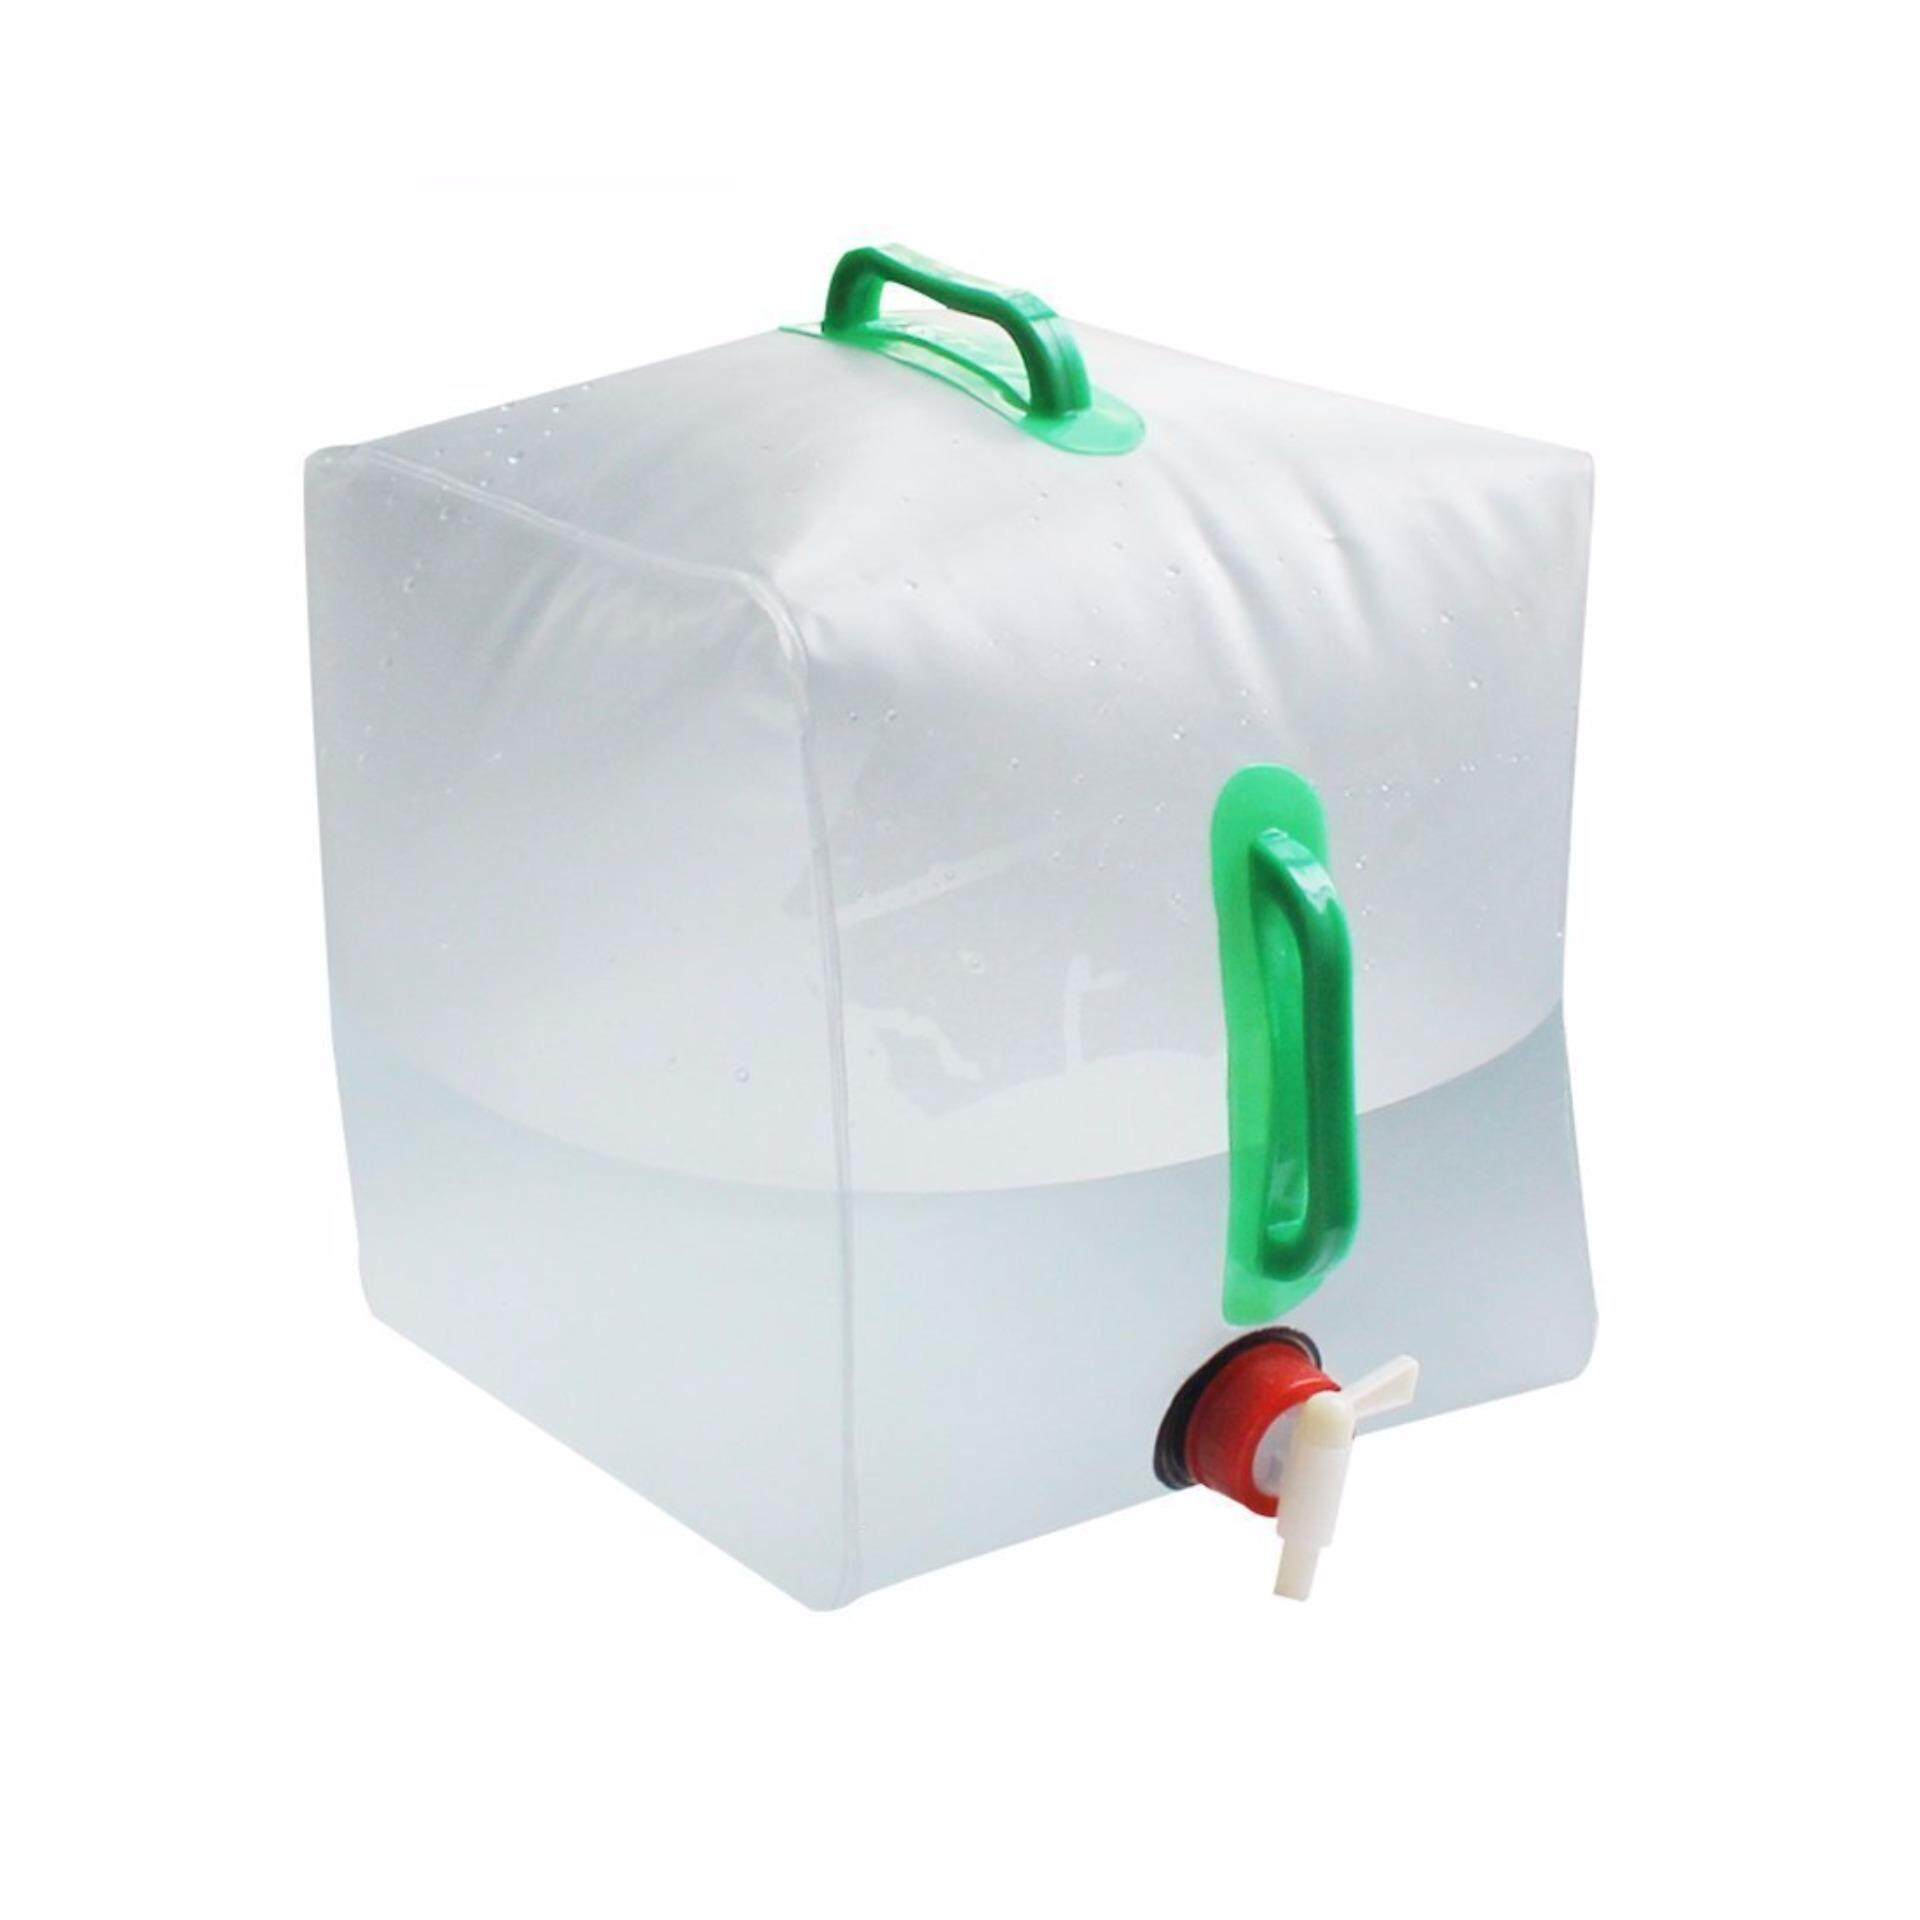 [READY STOCK] 10L Outdoor Camping Hiking Water Bag With Pipe - White